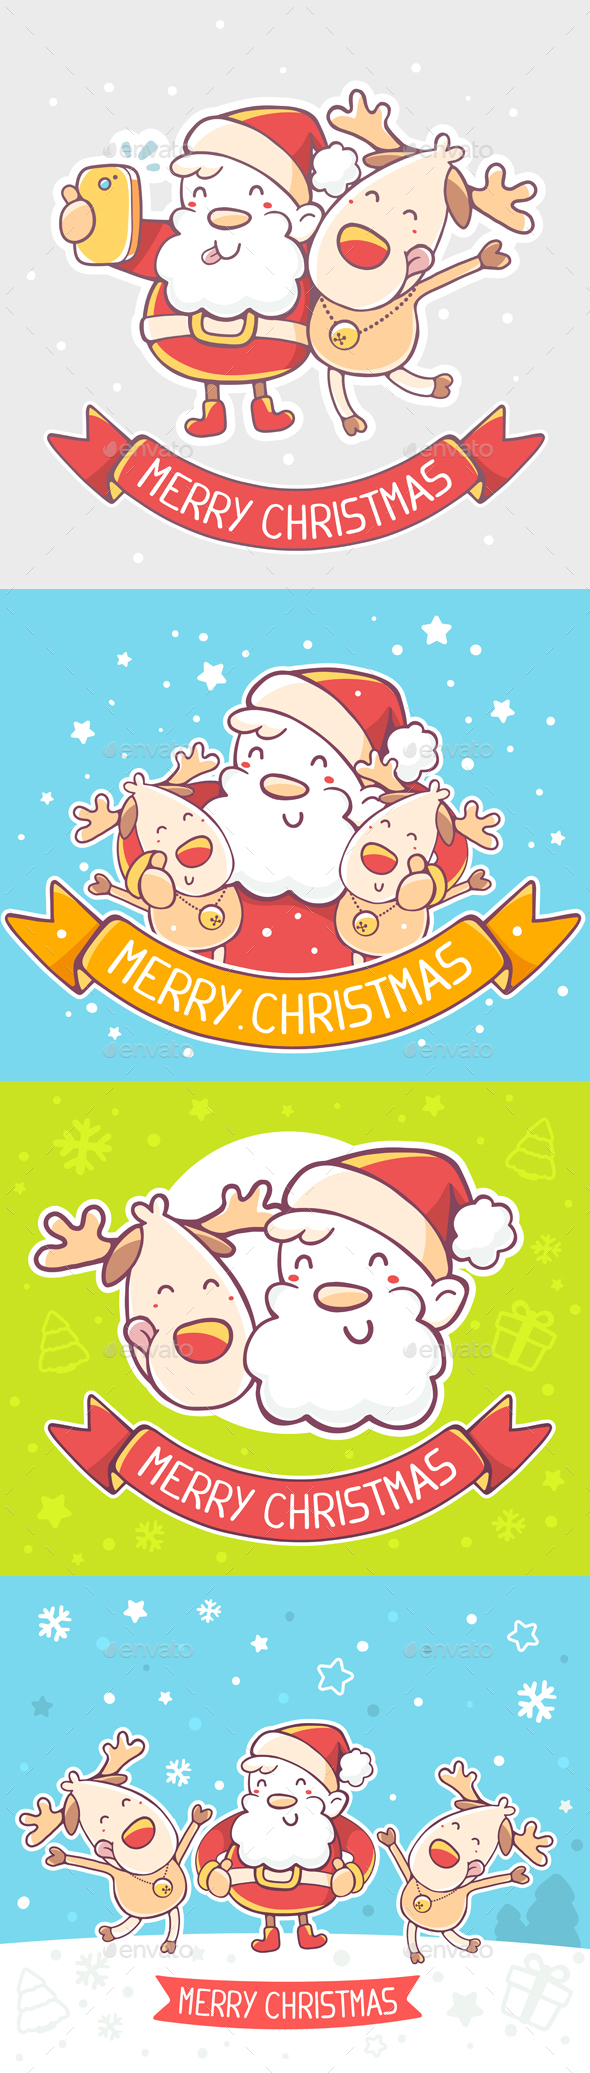 Illustrations with Santa Claus and Reindeers